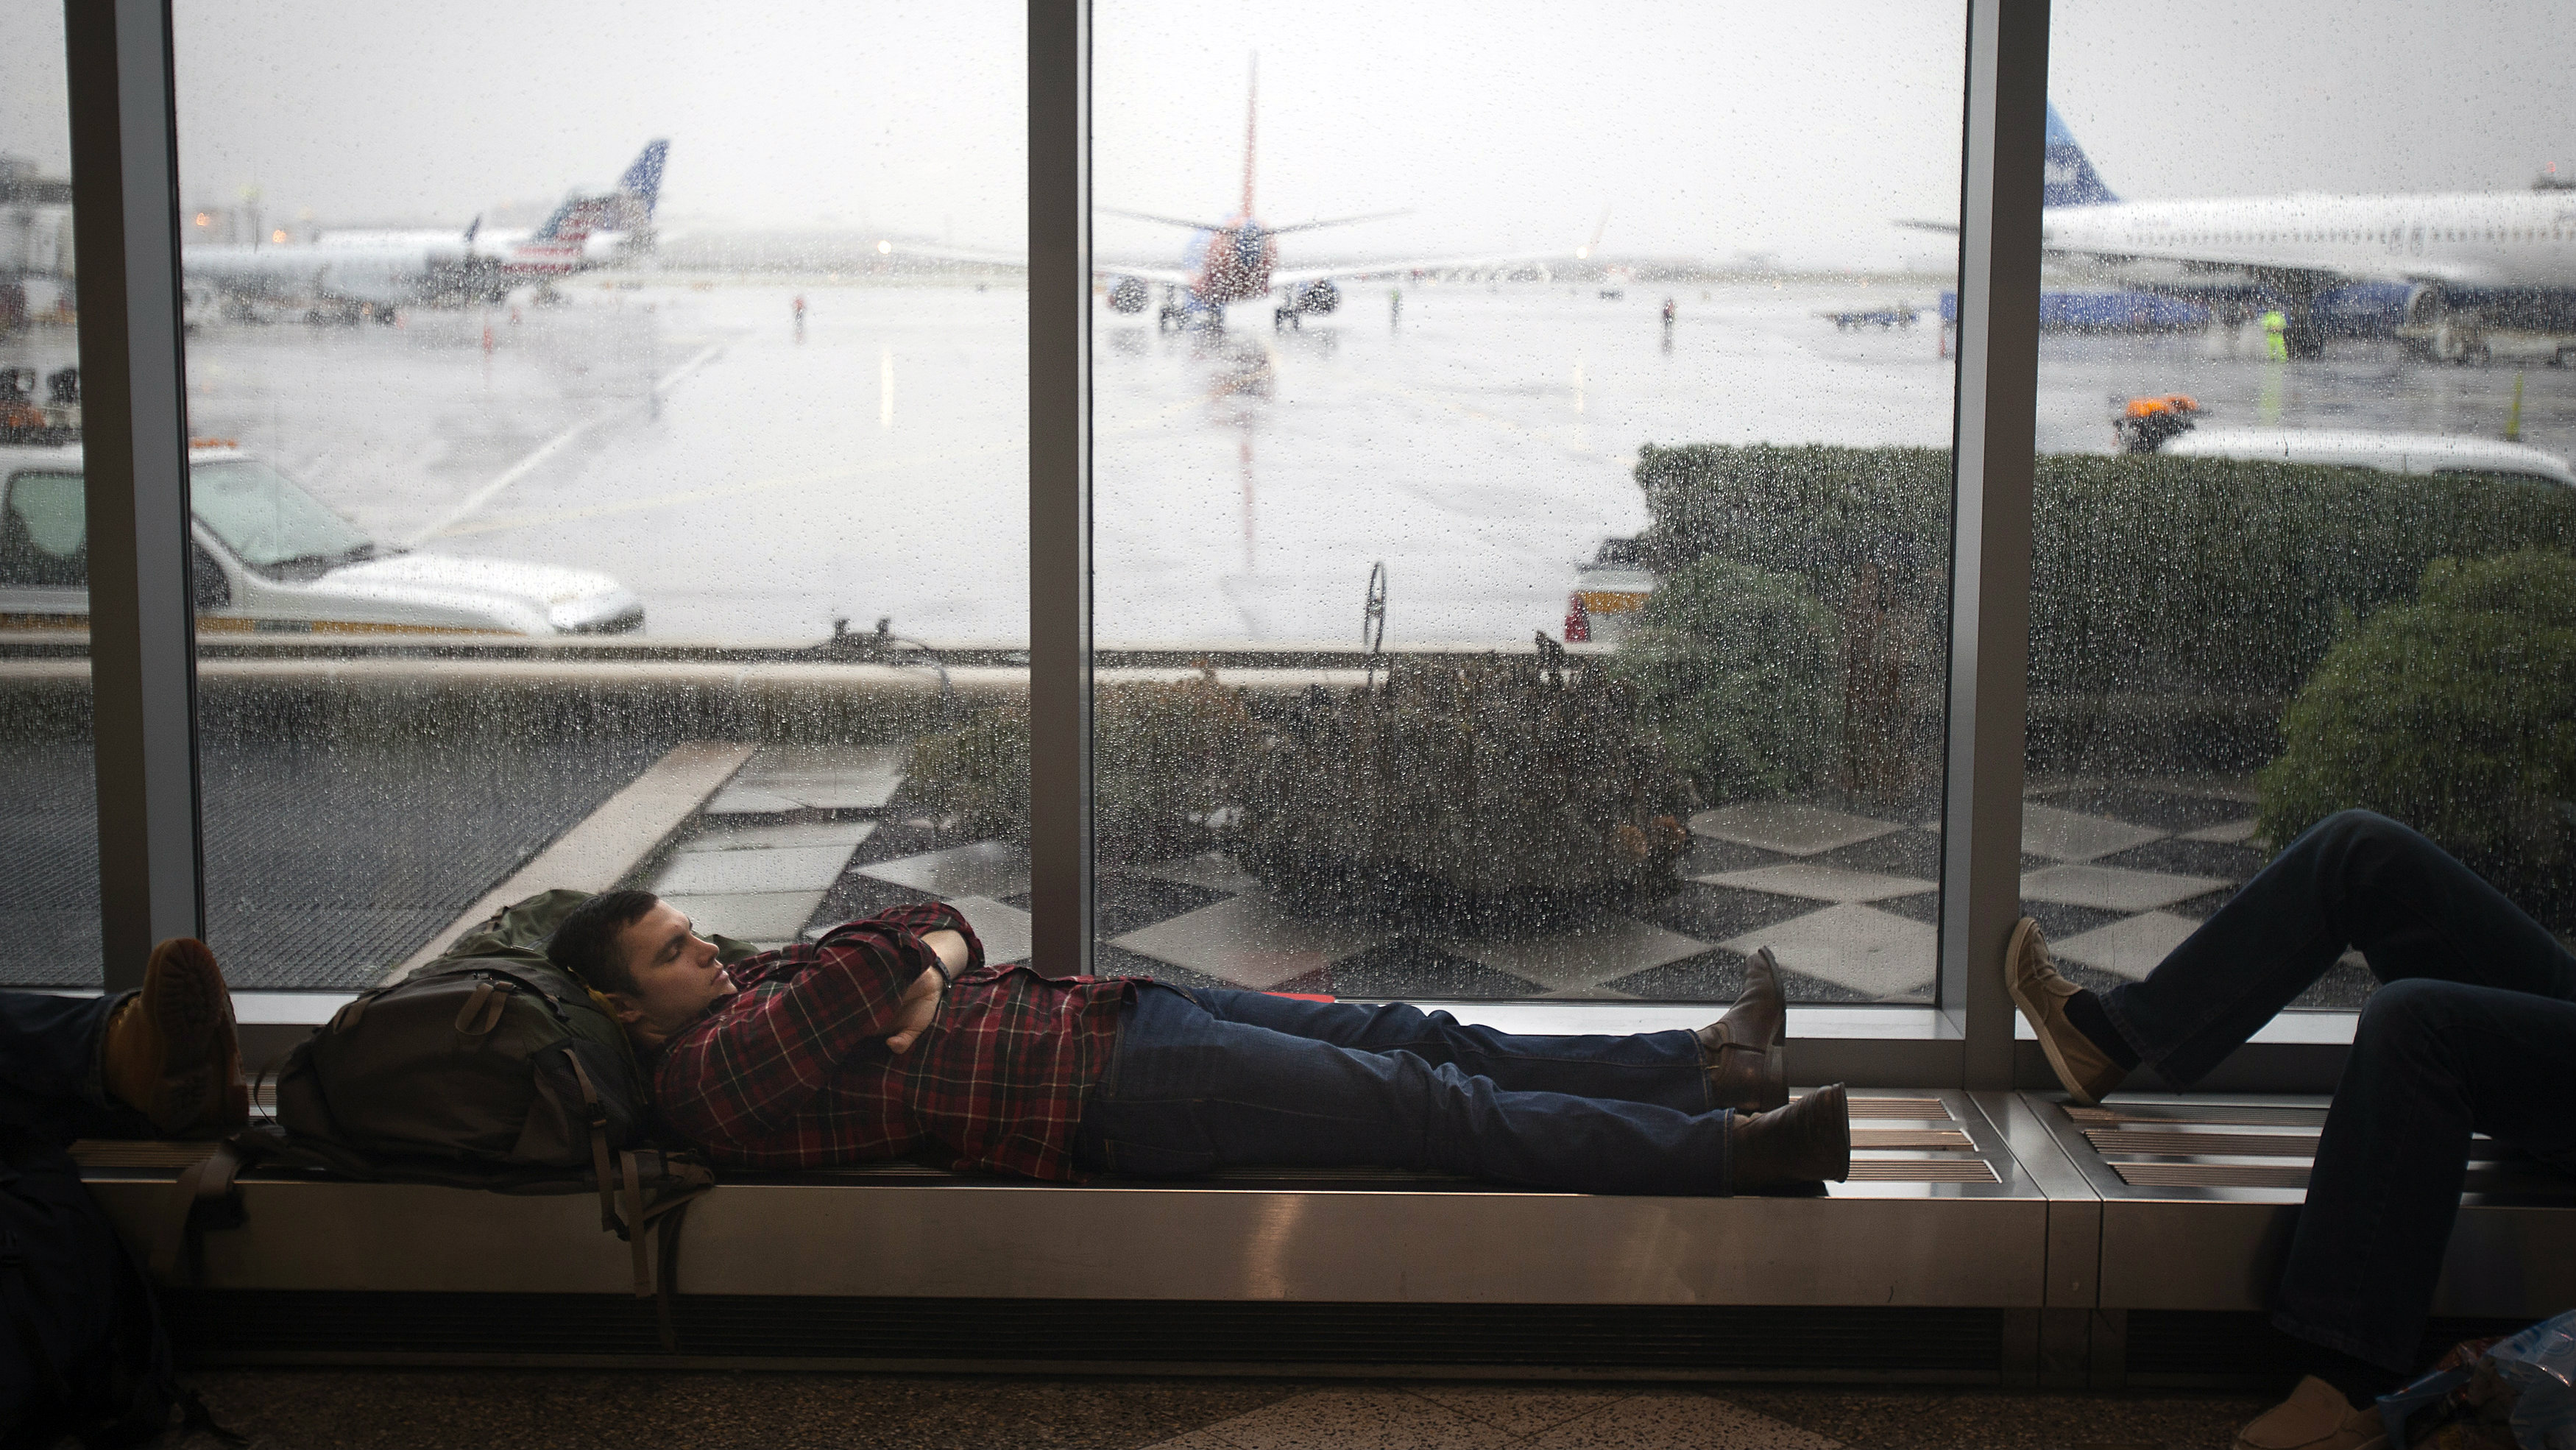 Man sleeping at airport gate